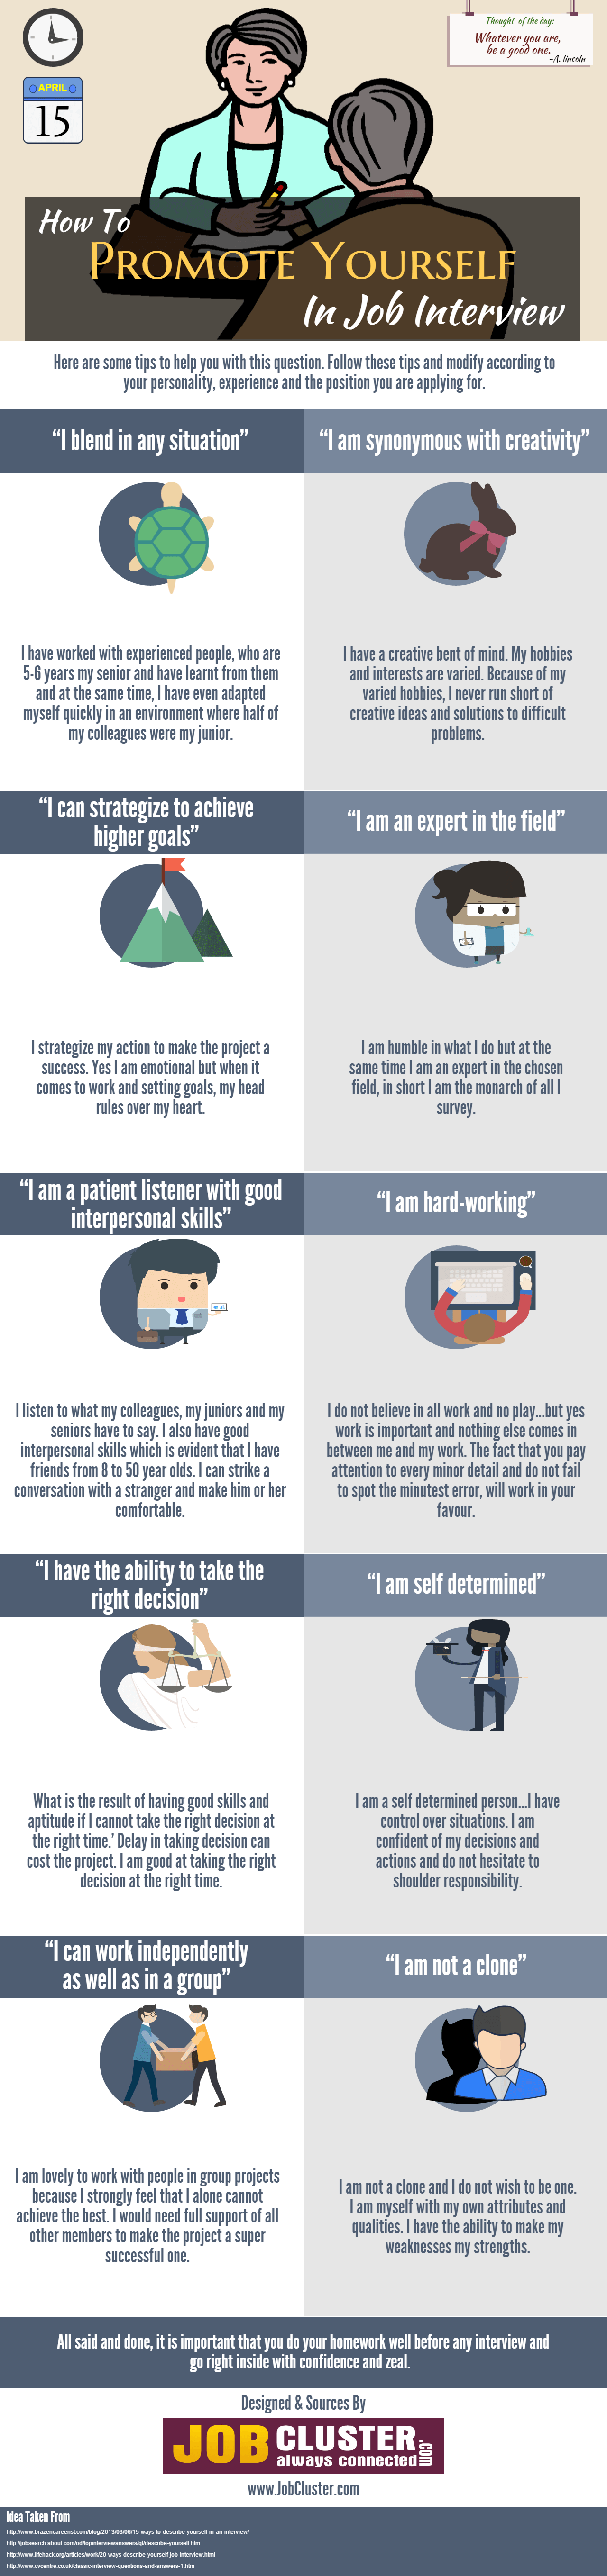 How To Promote Yourself In Job Interview Infographic  Job Interview Tips